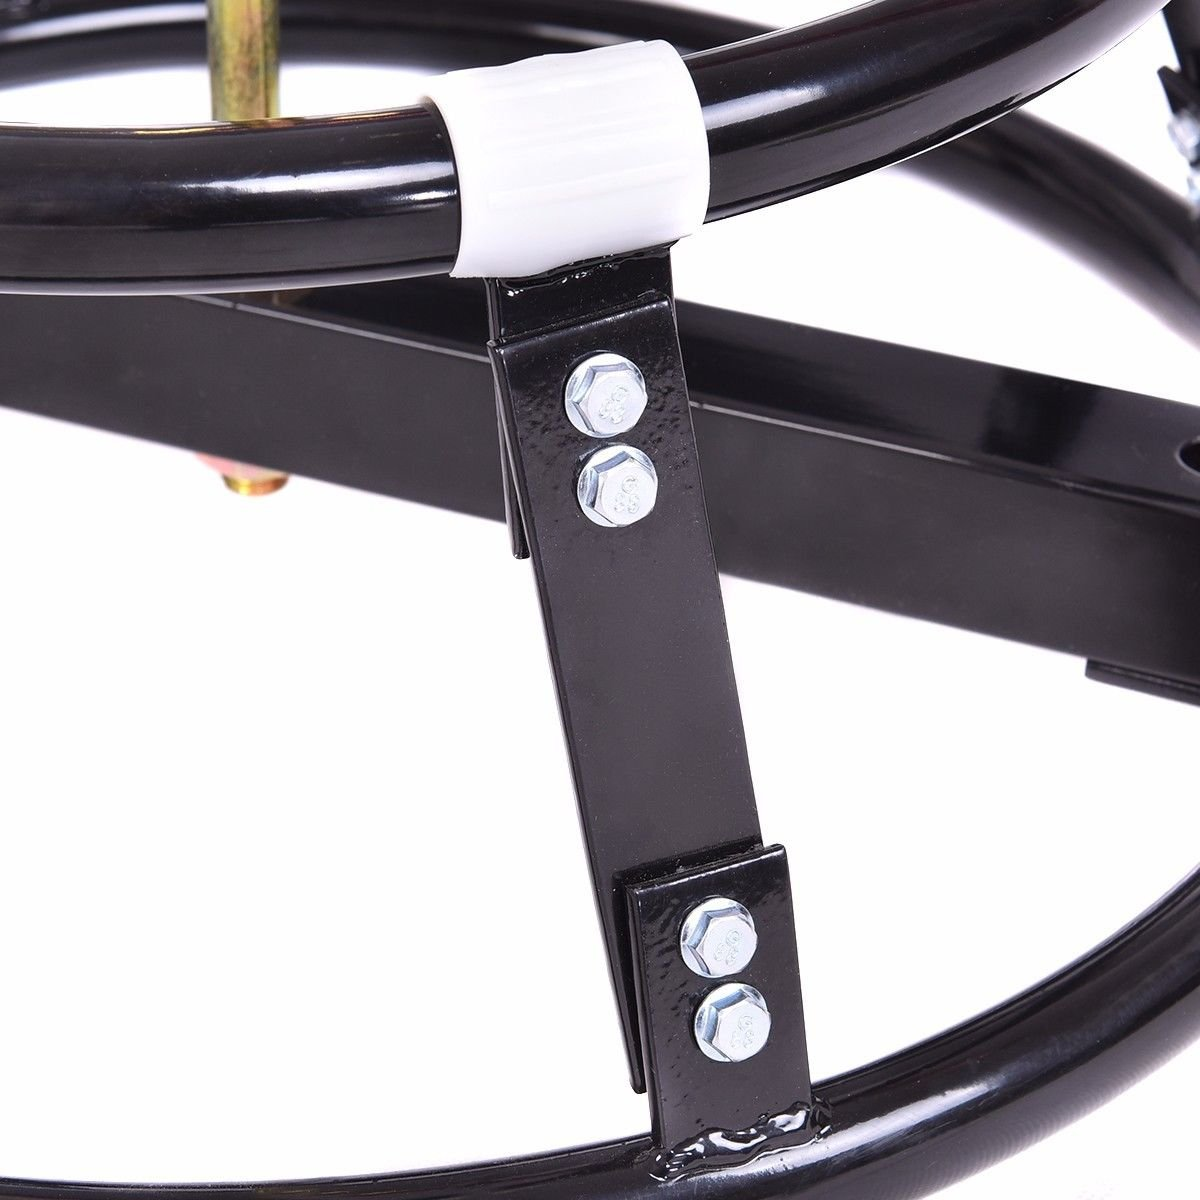 Goplus Bike Tire Changer Change Tyre Wheel for 16'' Rims or Larger Bicycle Motorcycle Portable Bead Breaker by Goplus (Image #7)